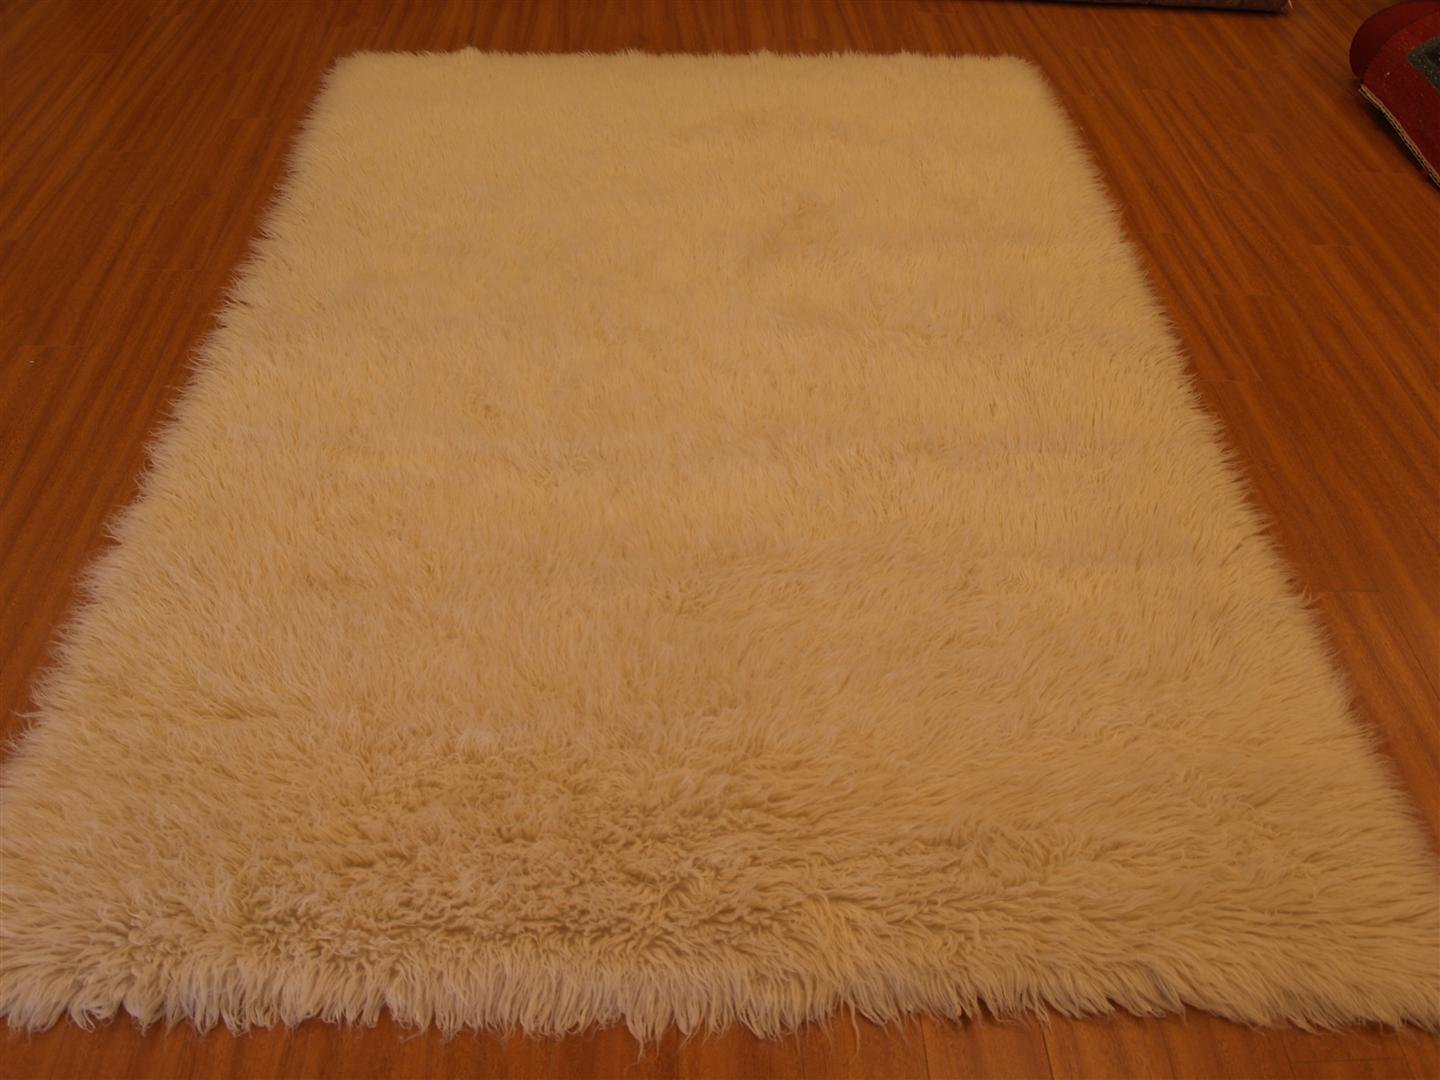 How to clean a flokati rug - Shag And Flokati Rugs However Can Be Tougher To Clean Than Ordinary Rugs Because Of Their High Pile That Is Where We Come Into Action